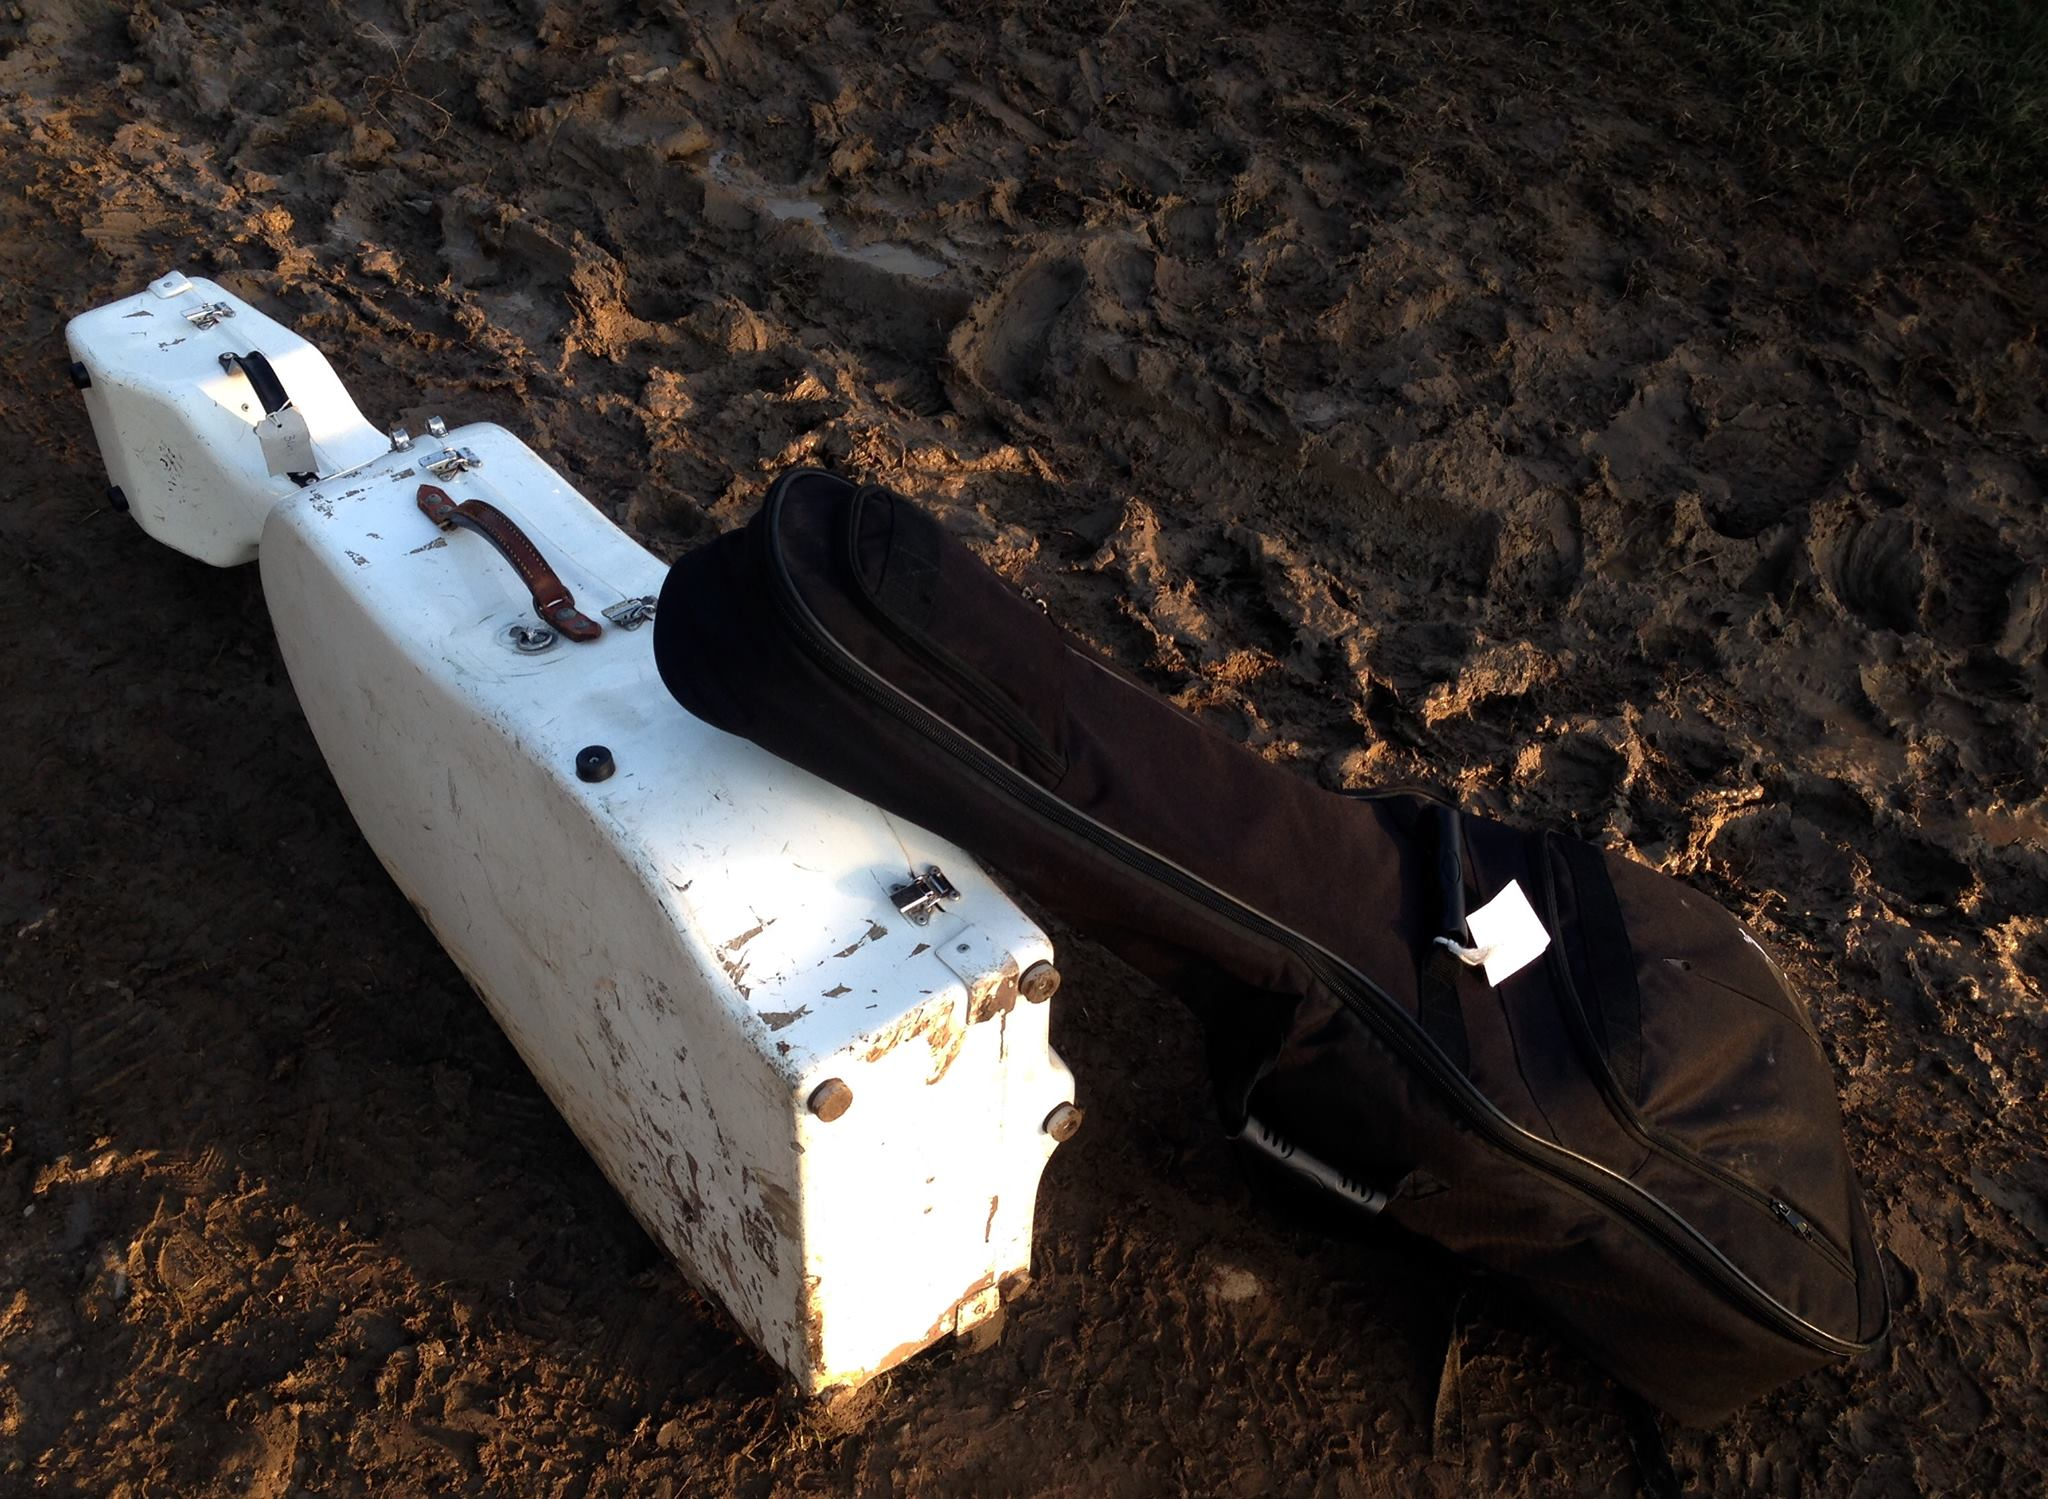 Cello and guitar resting in the mud